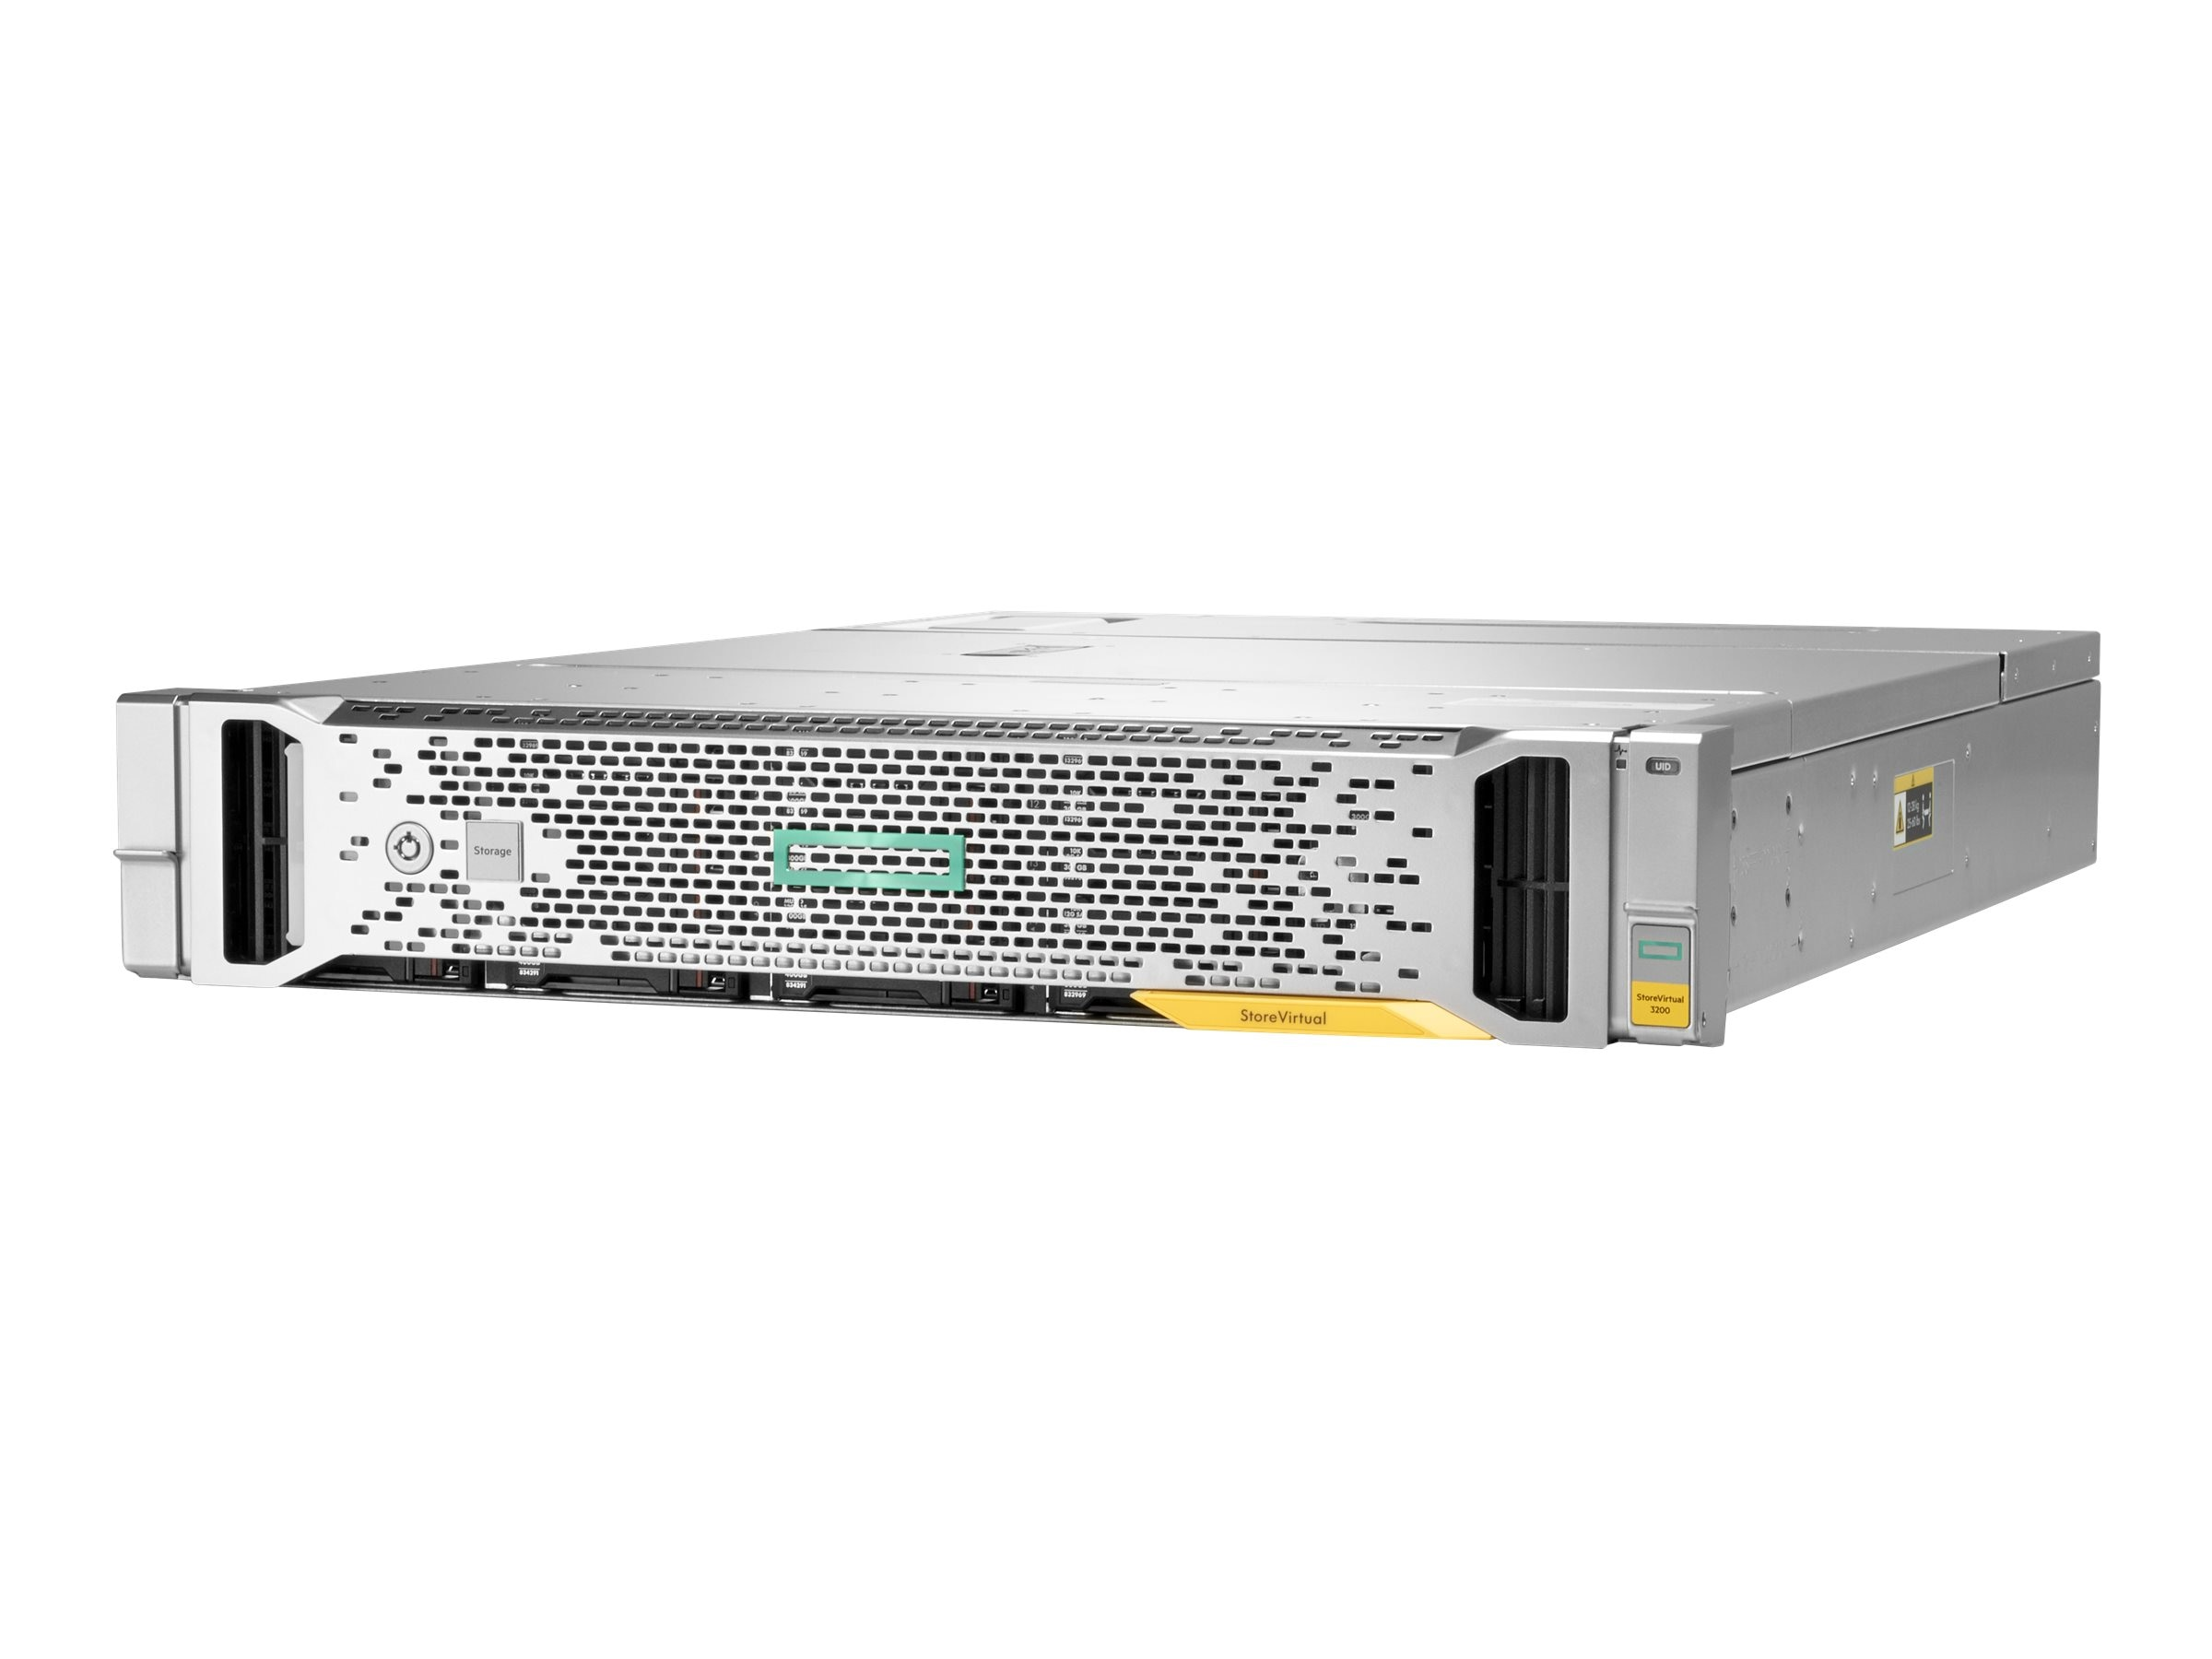 Hewlett Packard Enterprise N9X24A Image 1